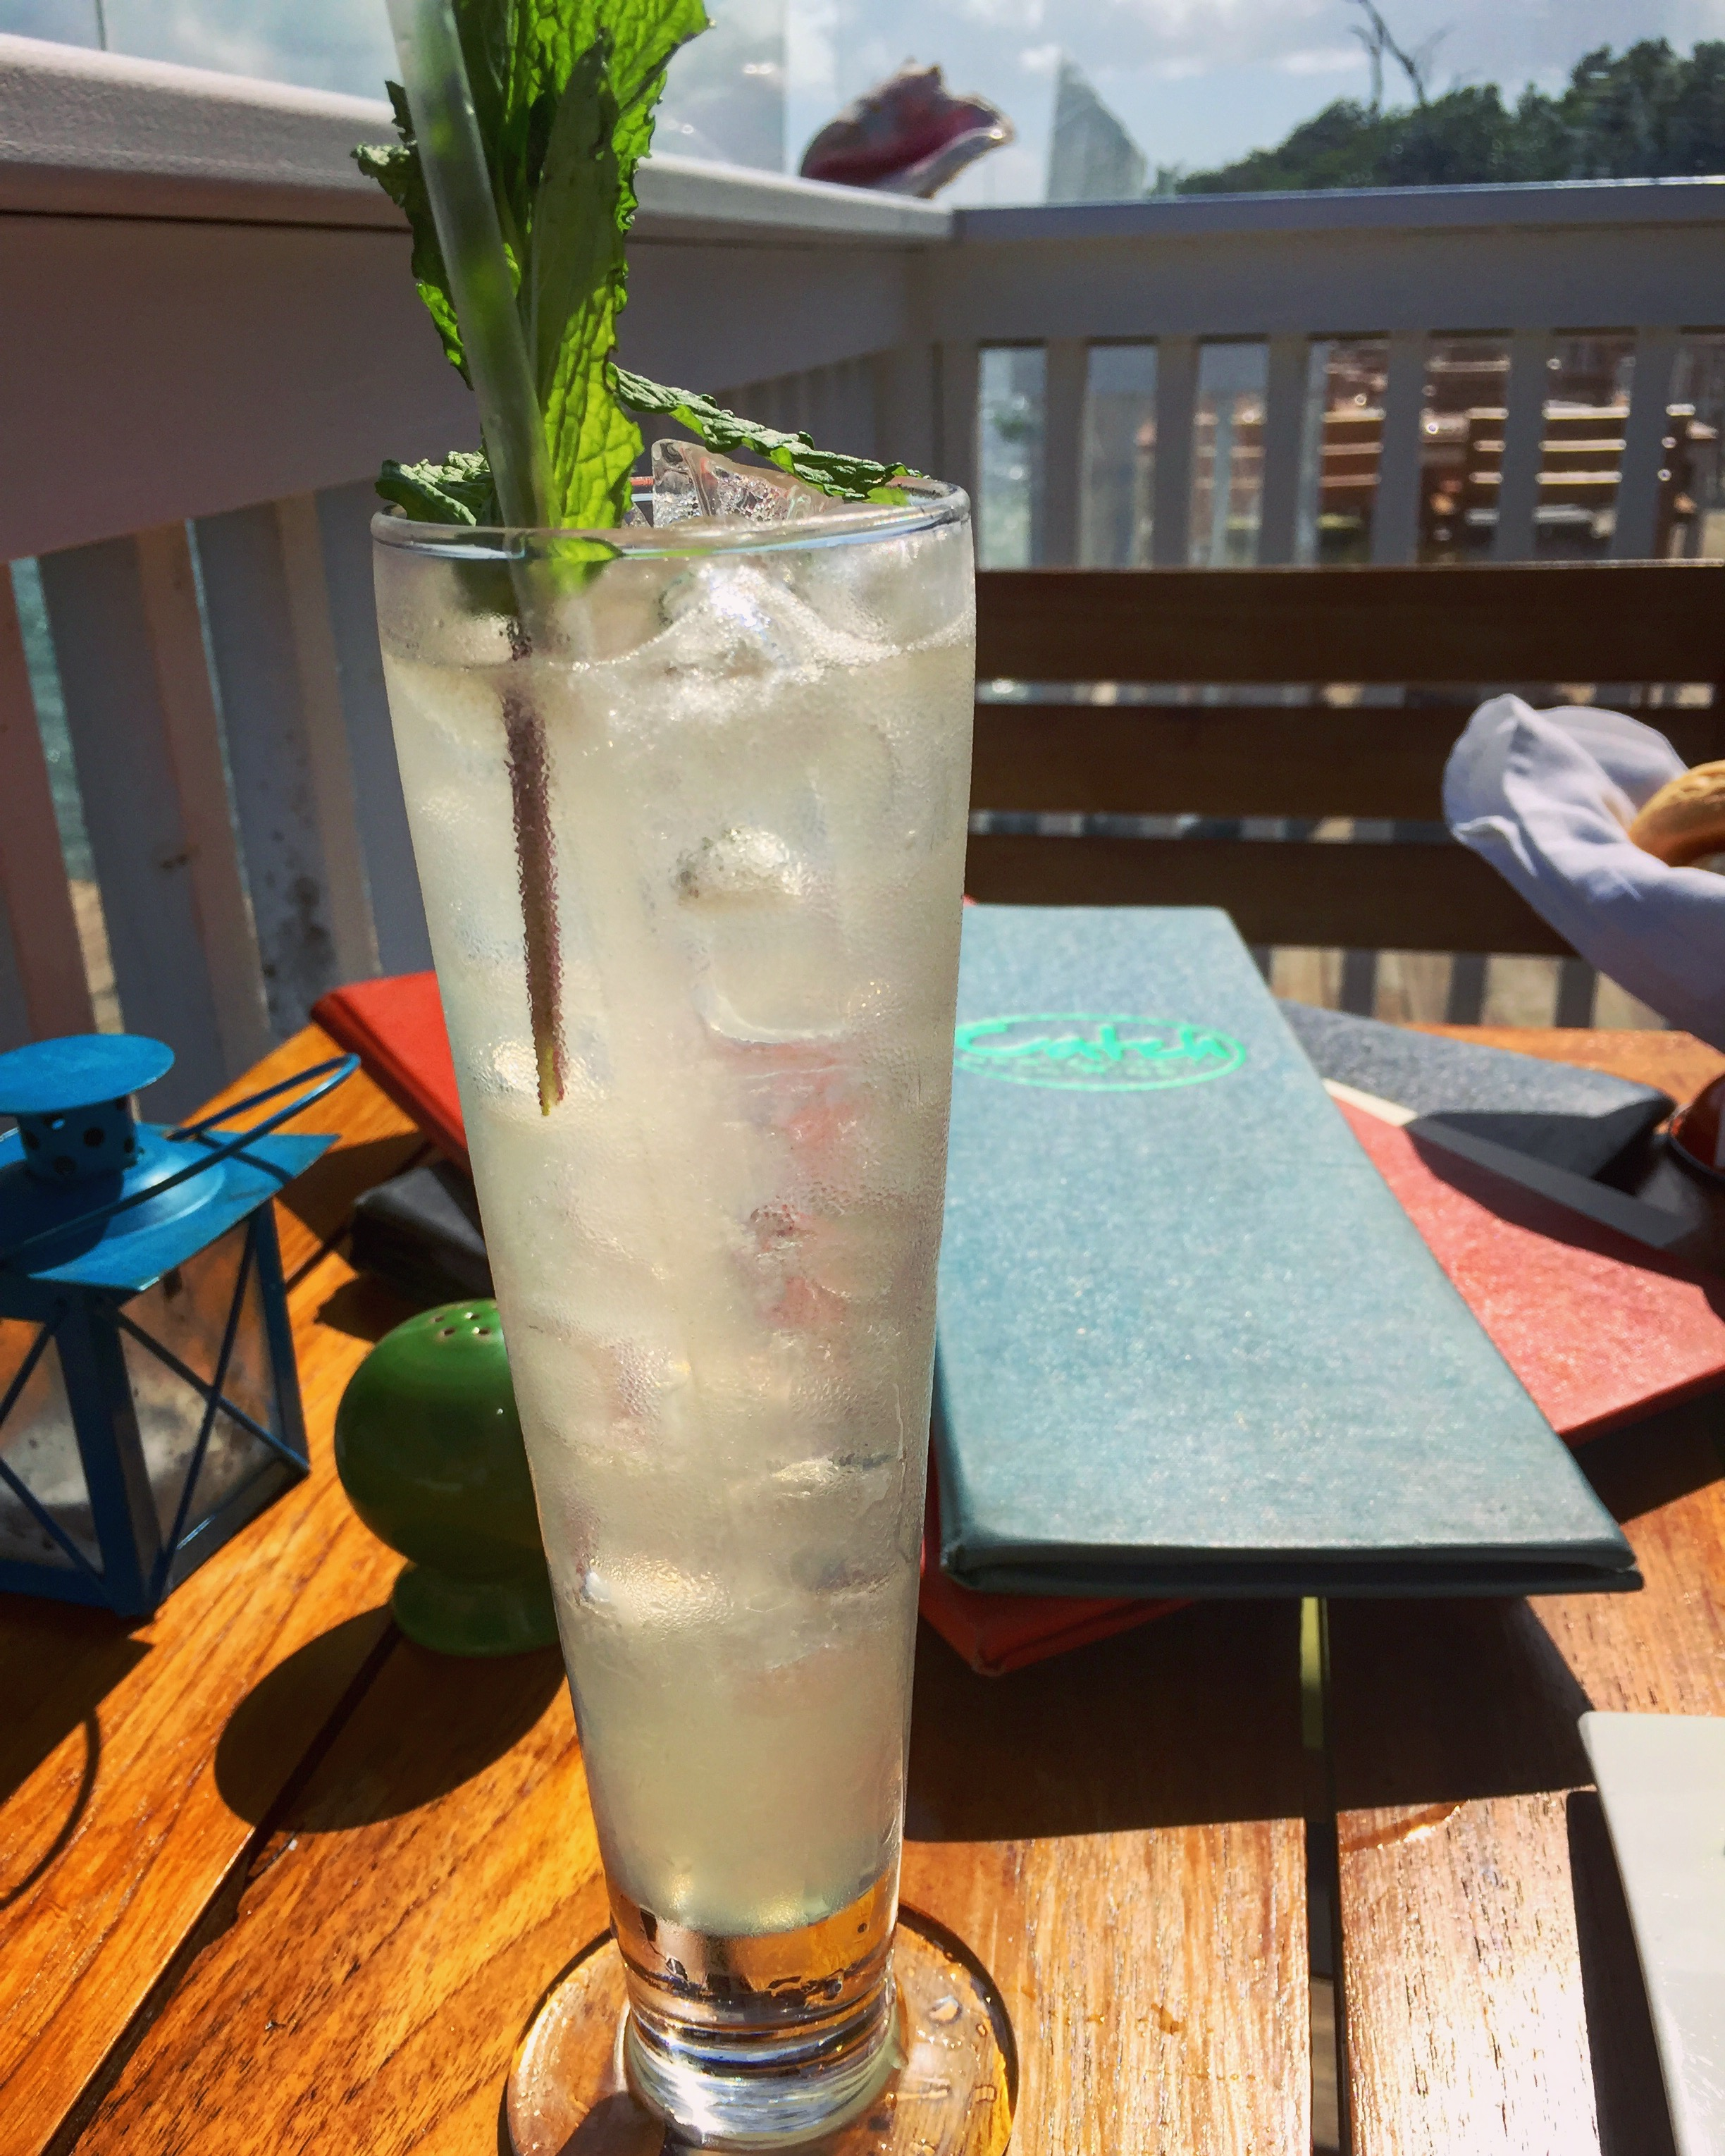 The Elderflower Collins: vodka, lemon juice, simple syrup, elderflower, soda